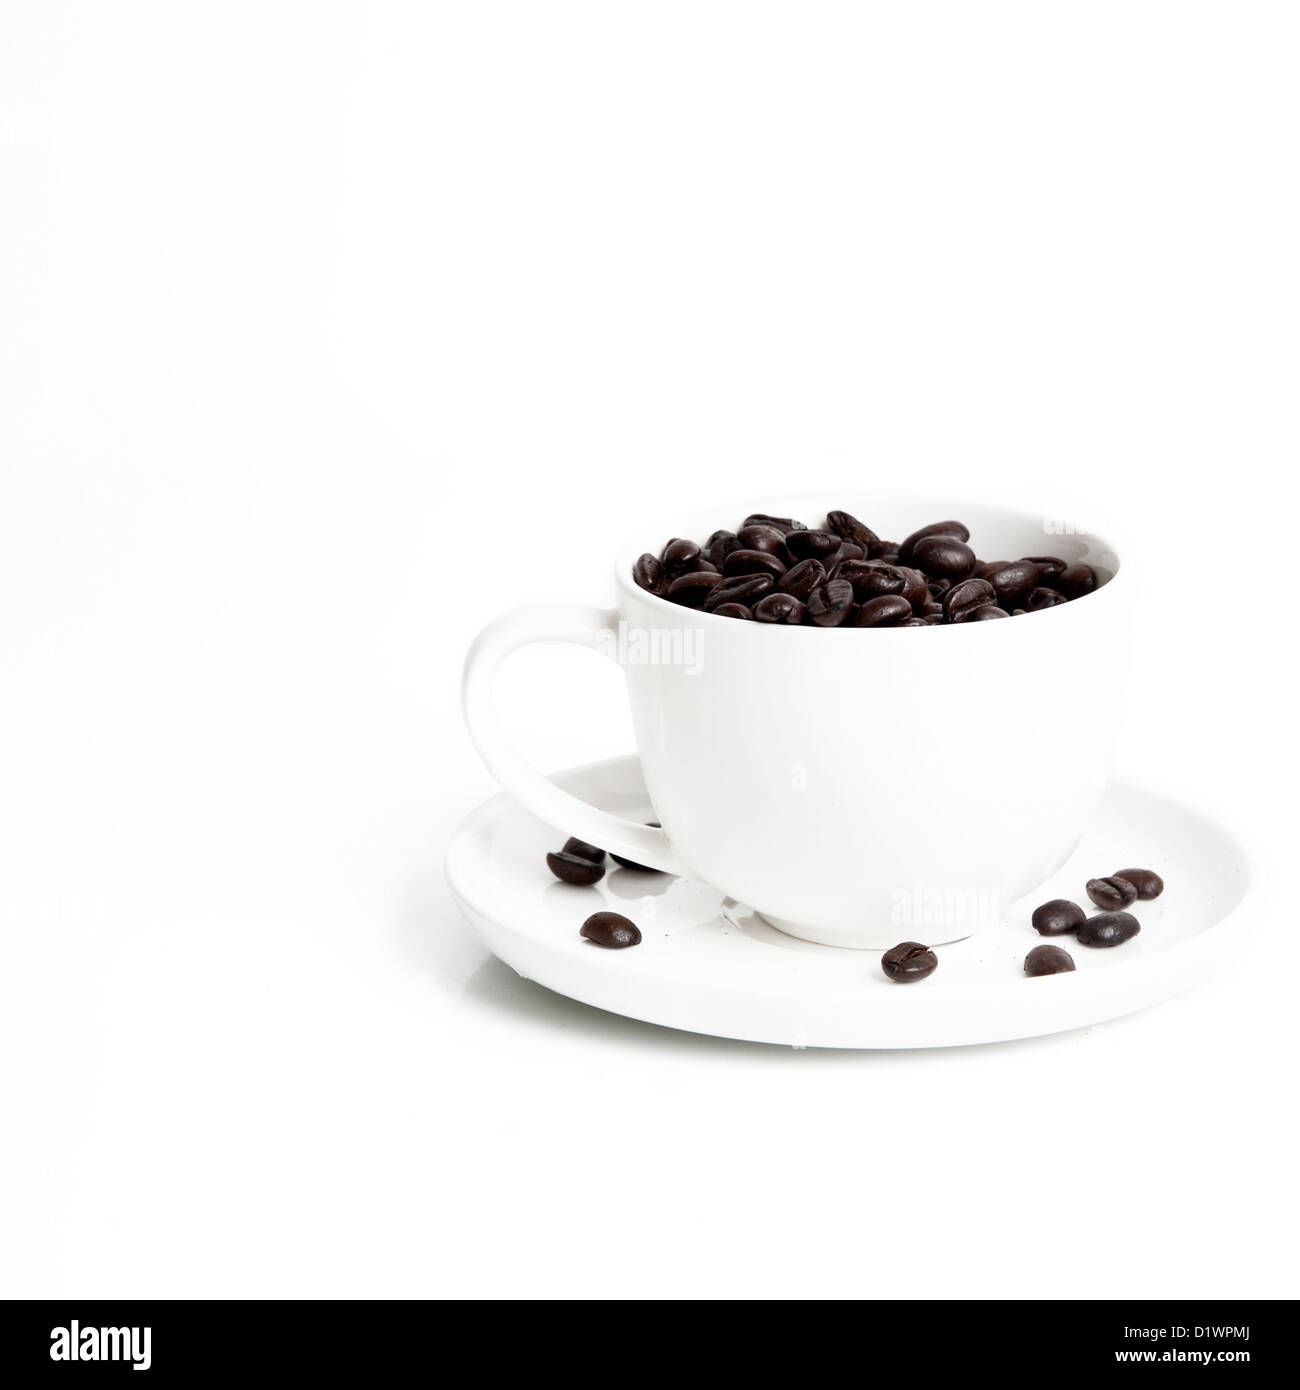 Coffee cup and saucer filled with coffee beans - Stock Image